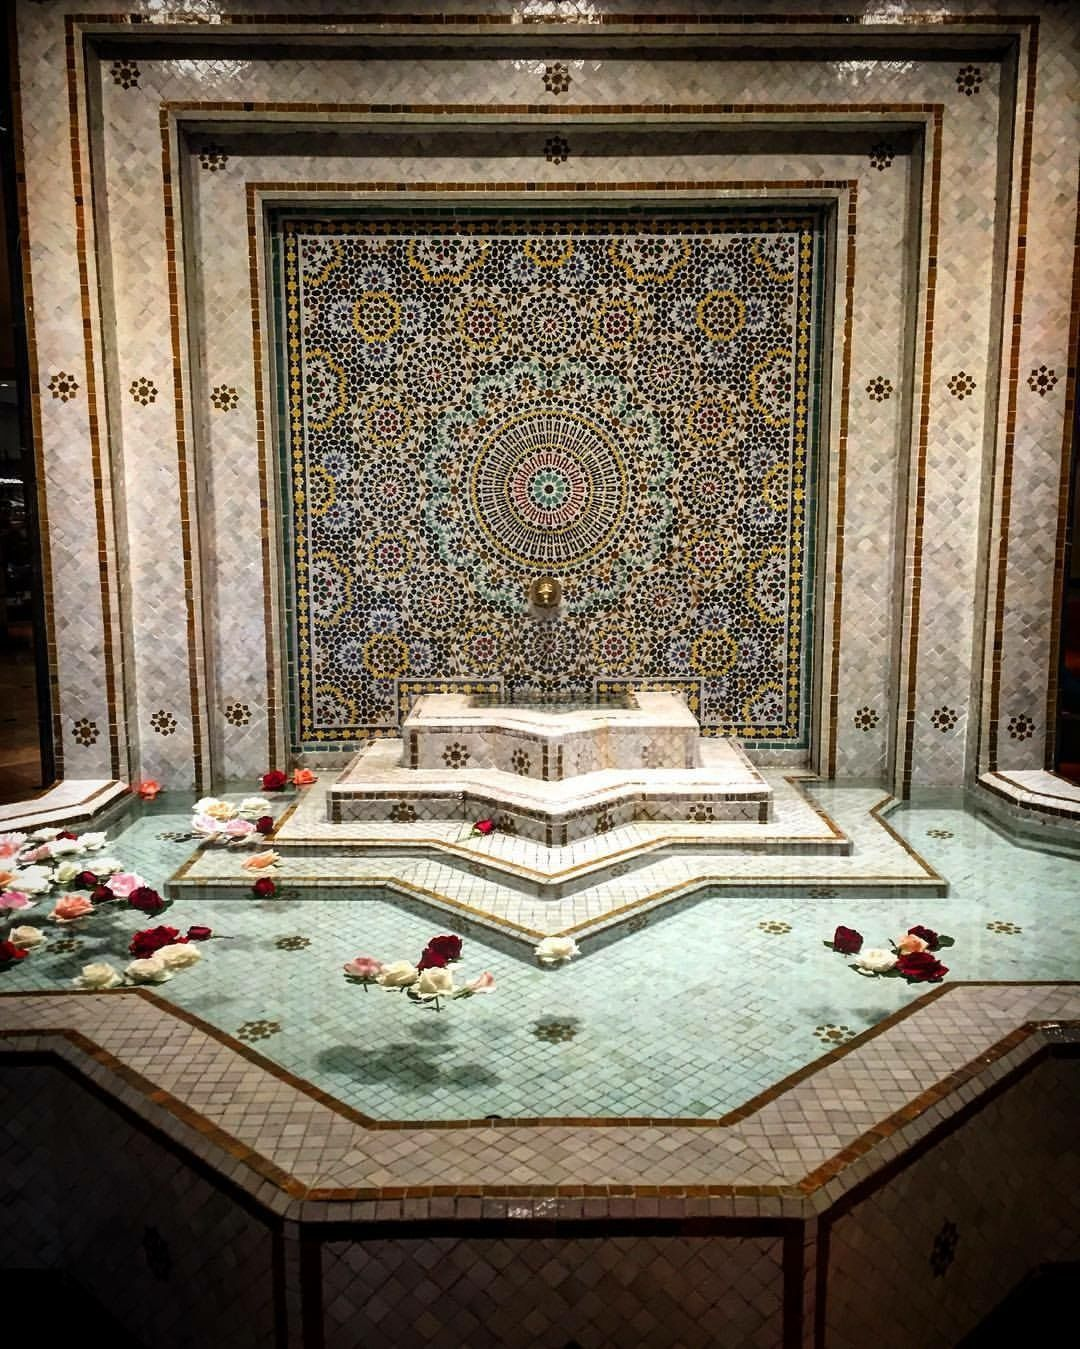 22 Designs With Amazing Morrocan Tile: Home Design Inspiration, Moroccan Tile, Pool, Fountain